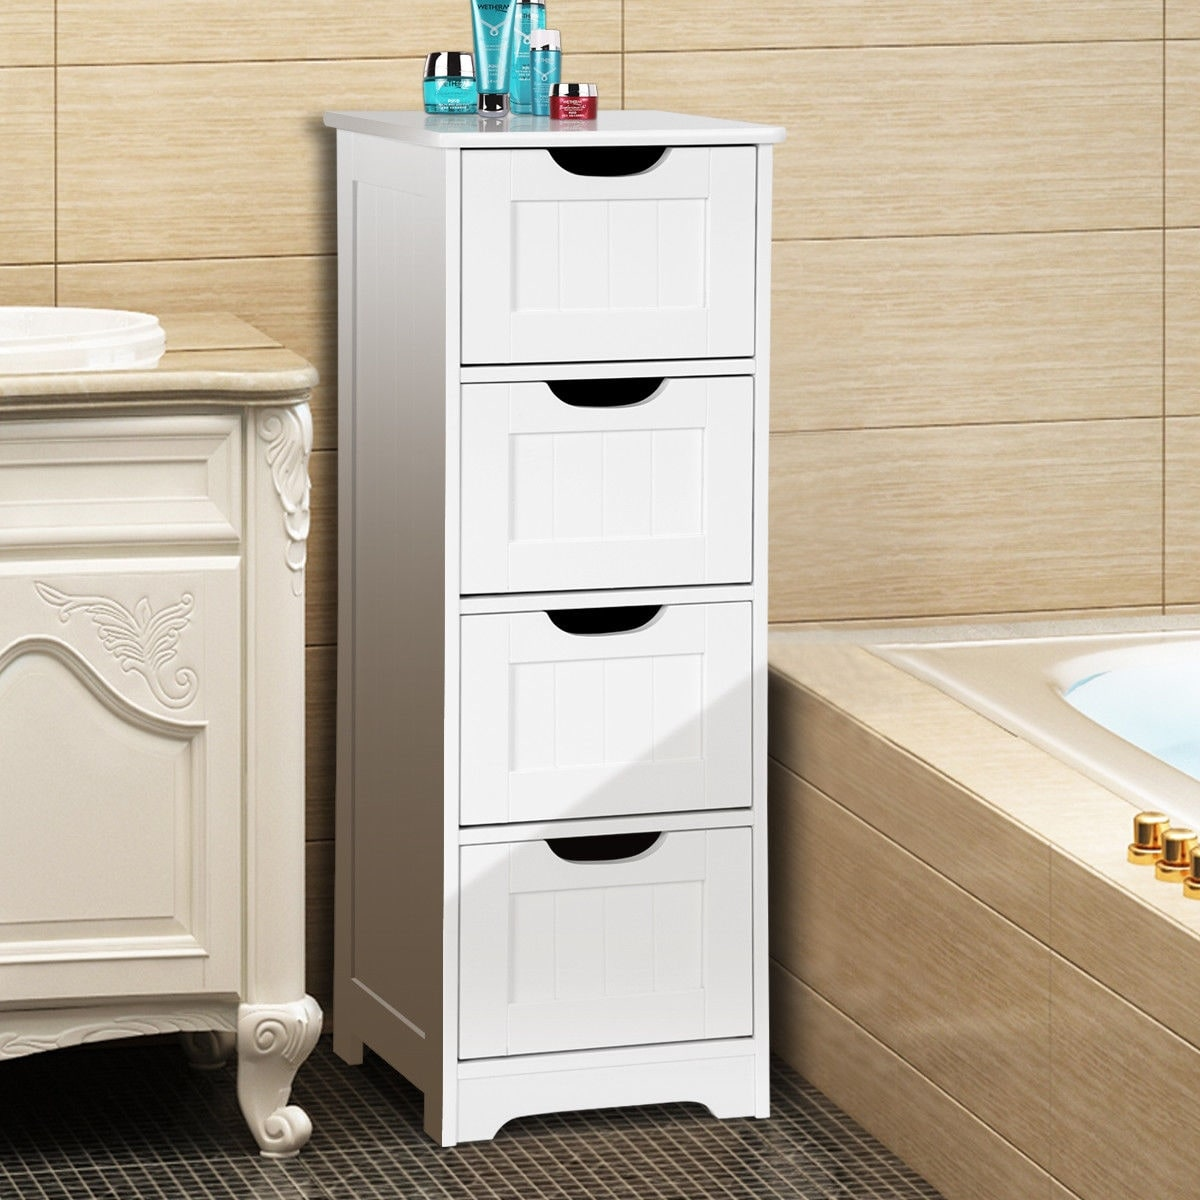 Gymax Bathroom Floor Cabinet Wooden Free Standing Storage Side Overstock 22827562